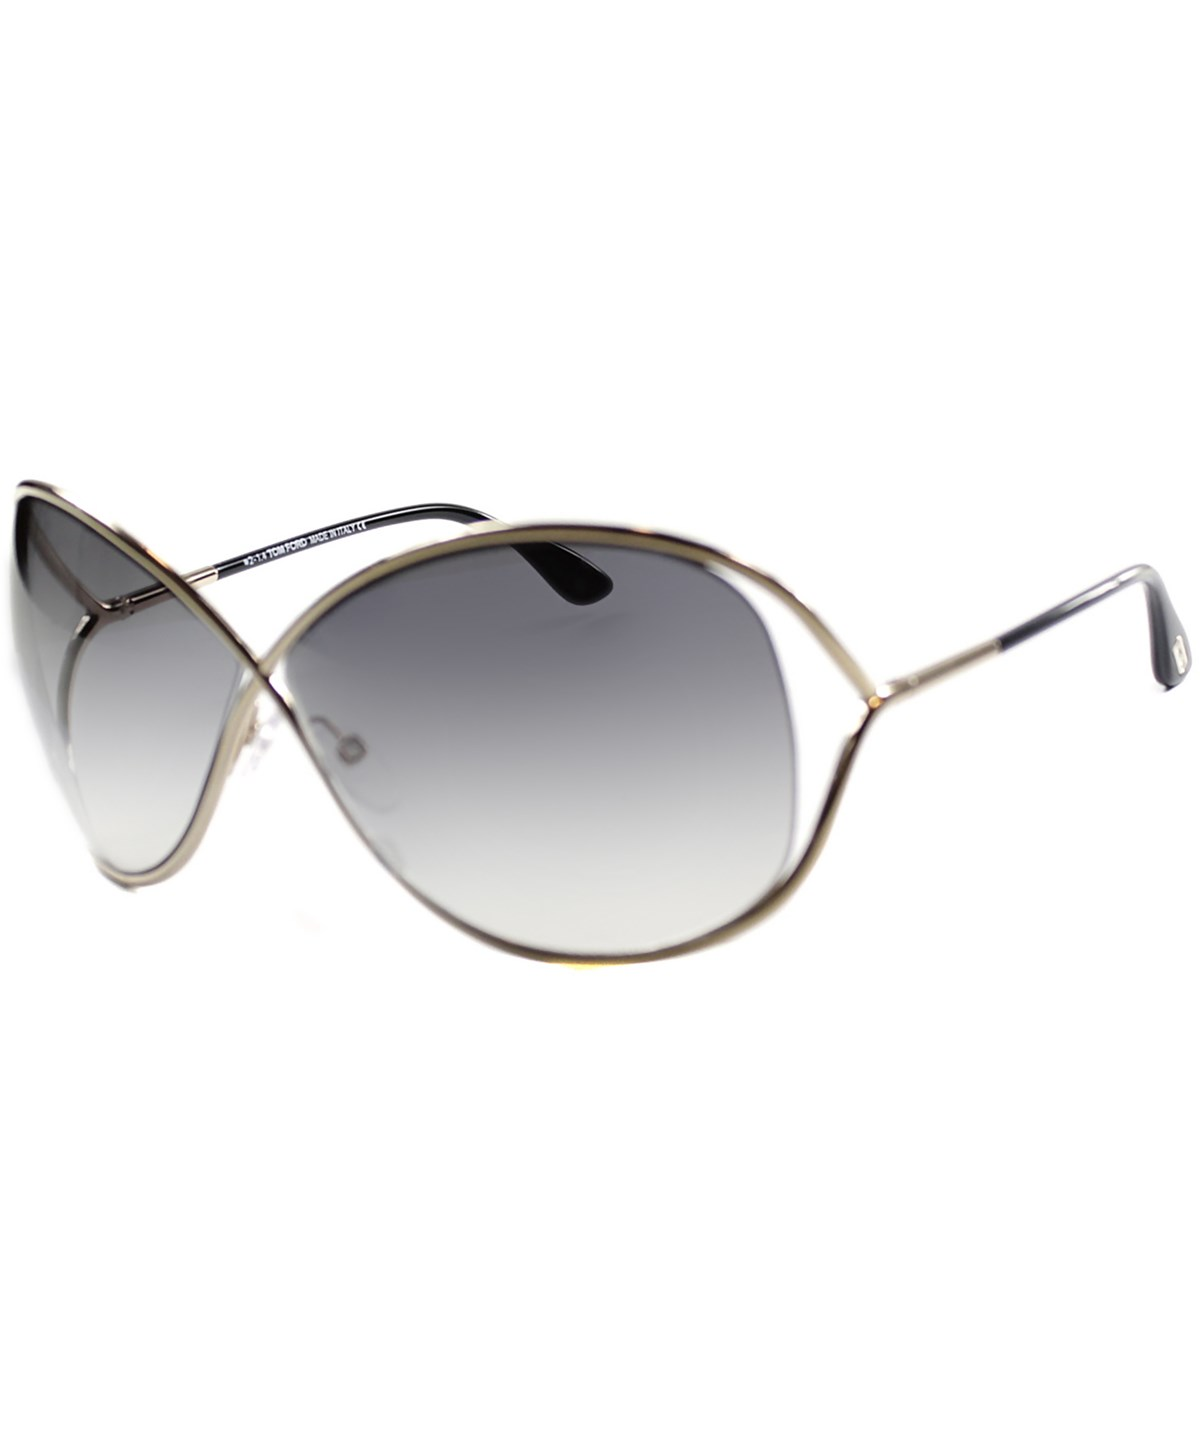 54539934bf99 Tom Ford Miranda 68Mm Open Temple Oversize Metal Sunglasses - Shiny Gunmetal